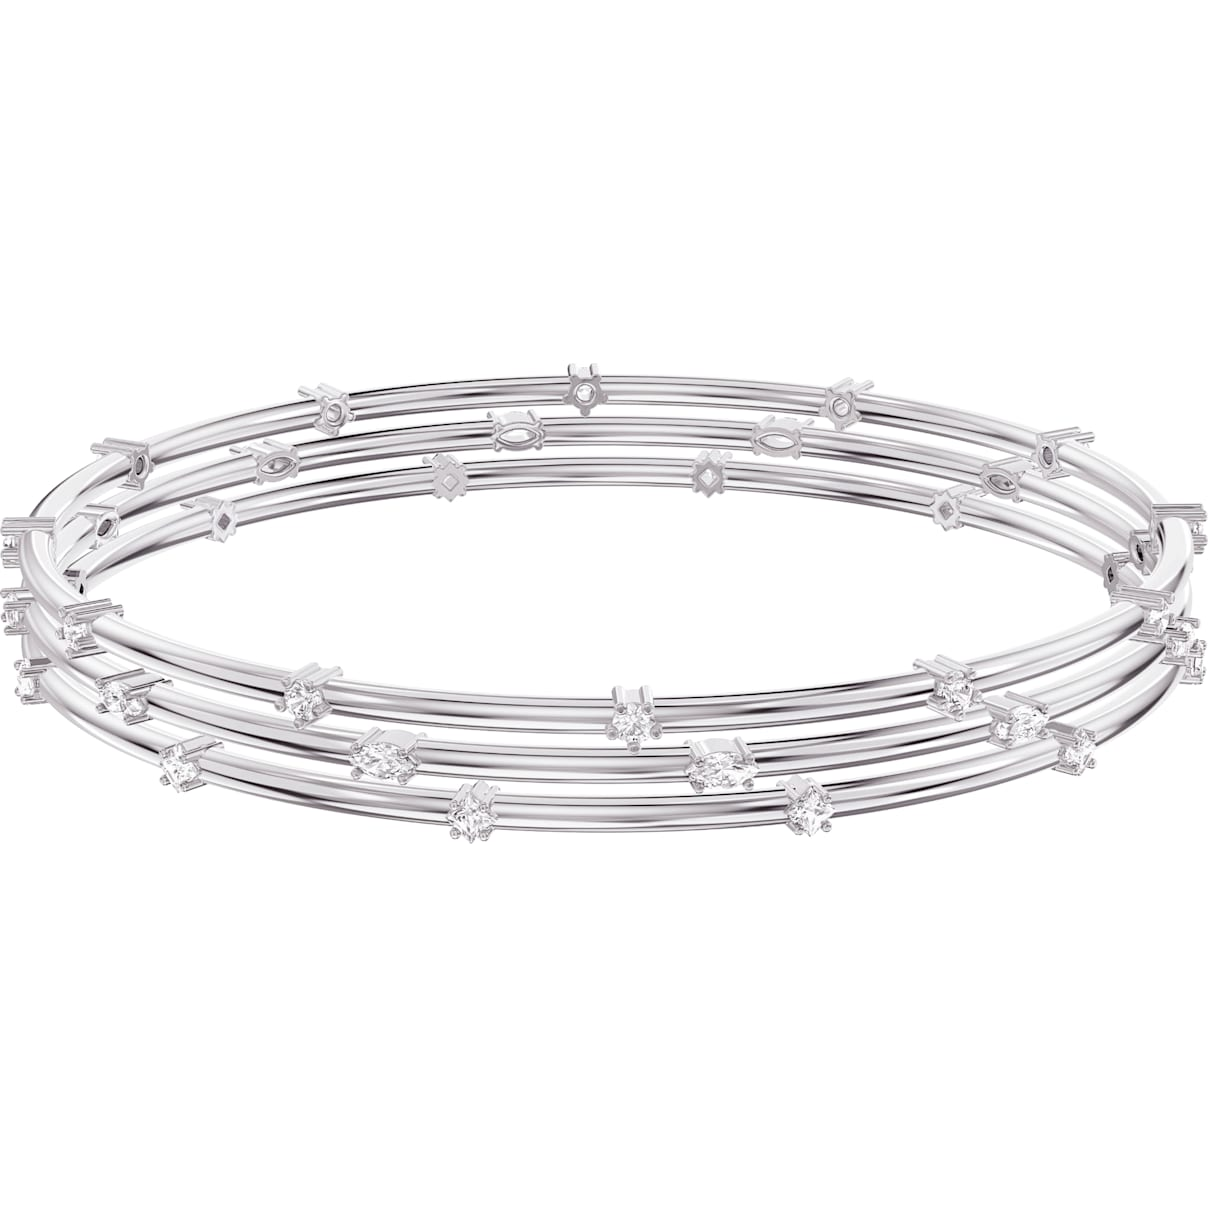 Swarovski Penélope Cruz Moonsun Cluster Bangle, White, Rhodium plated